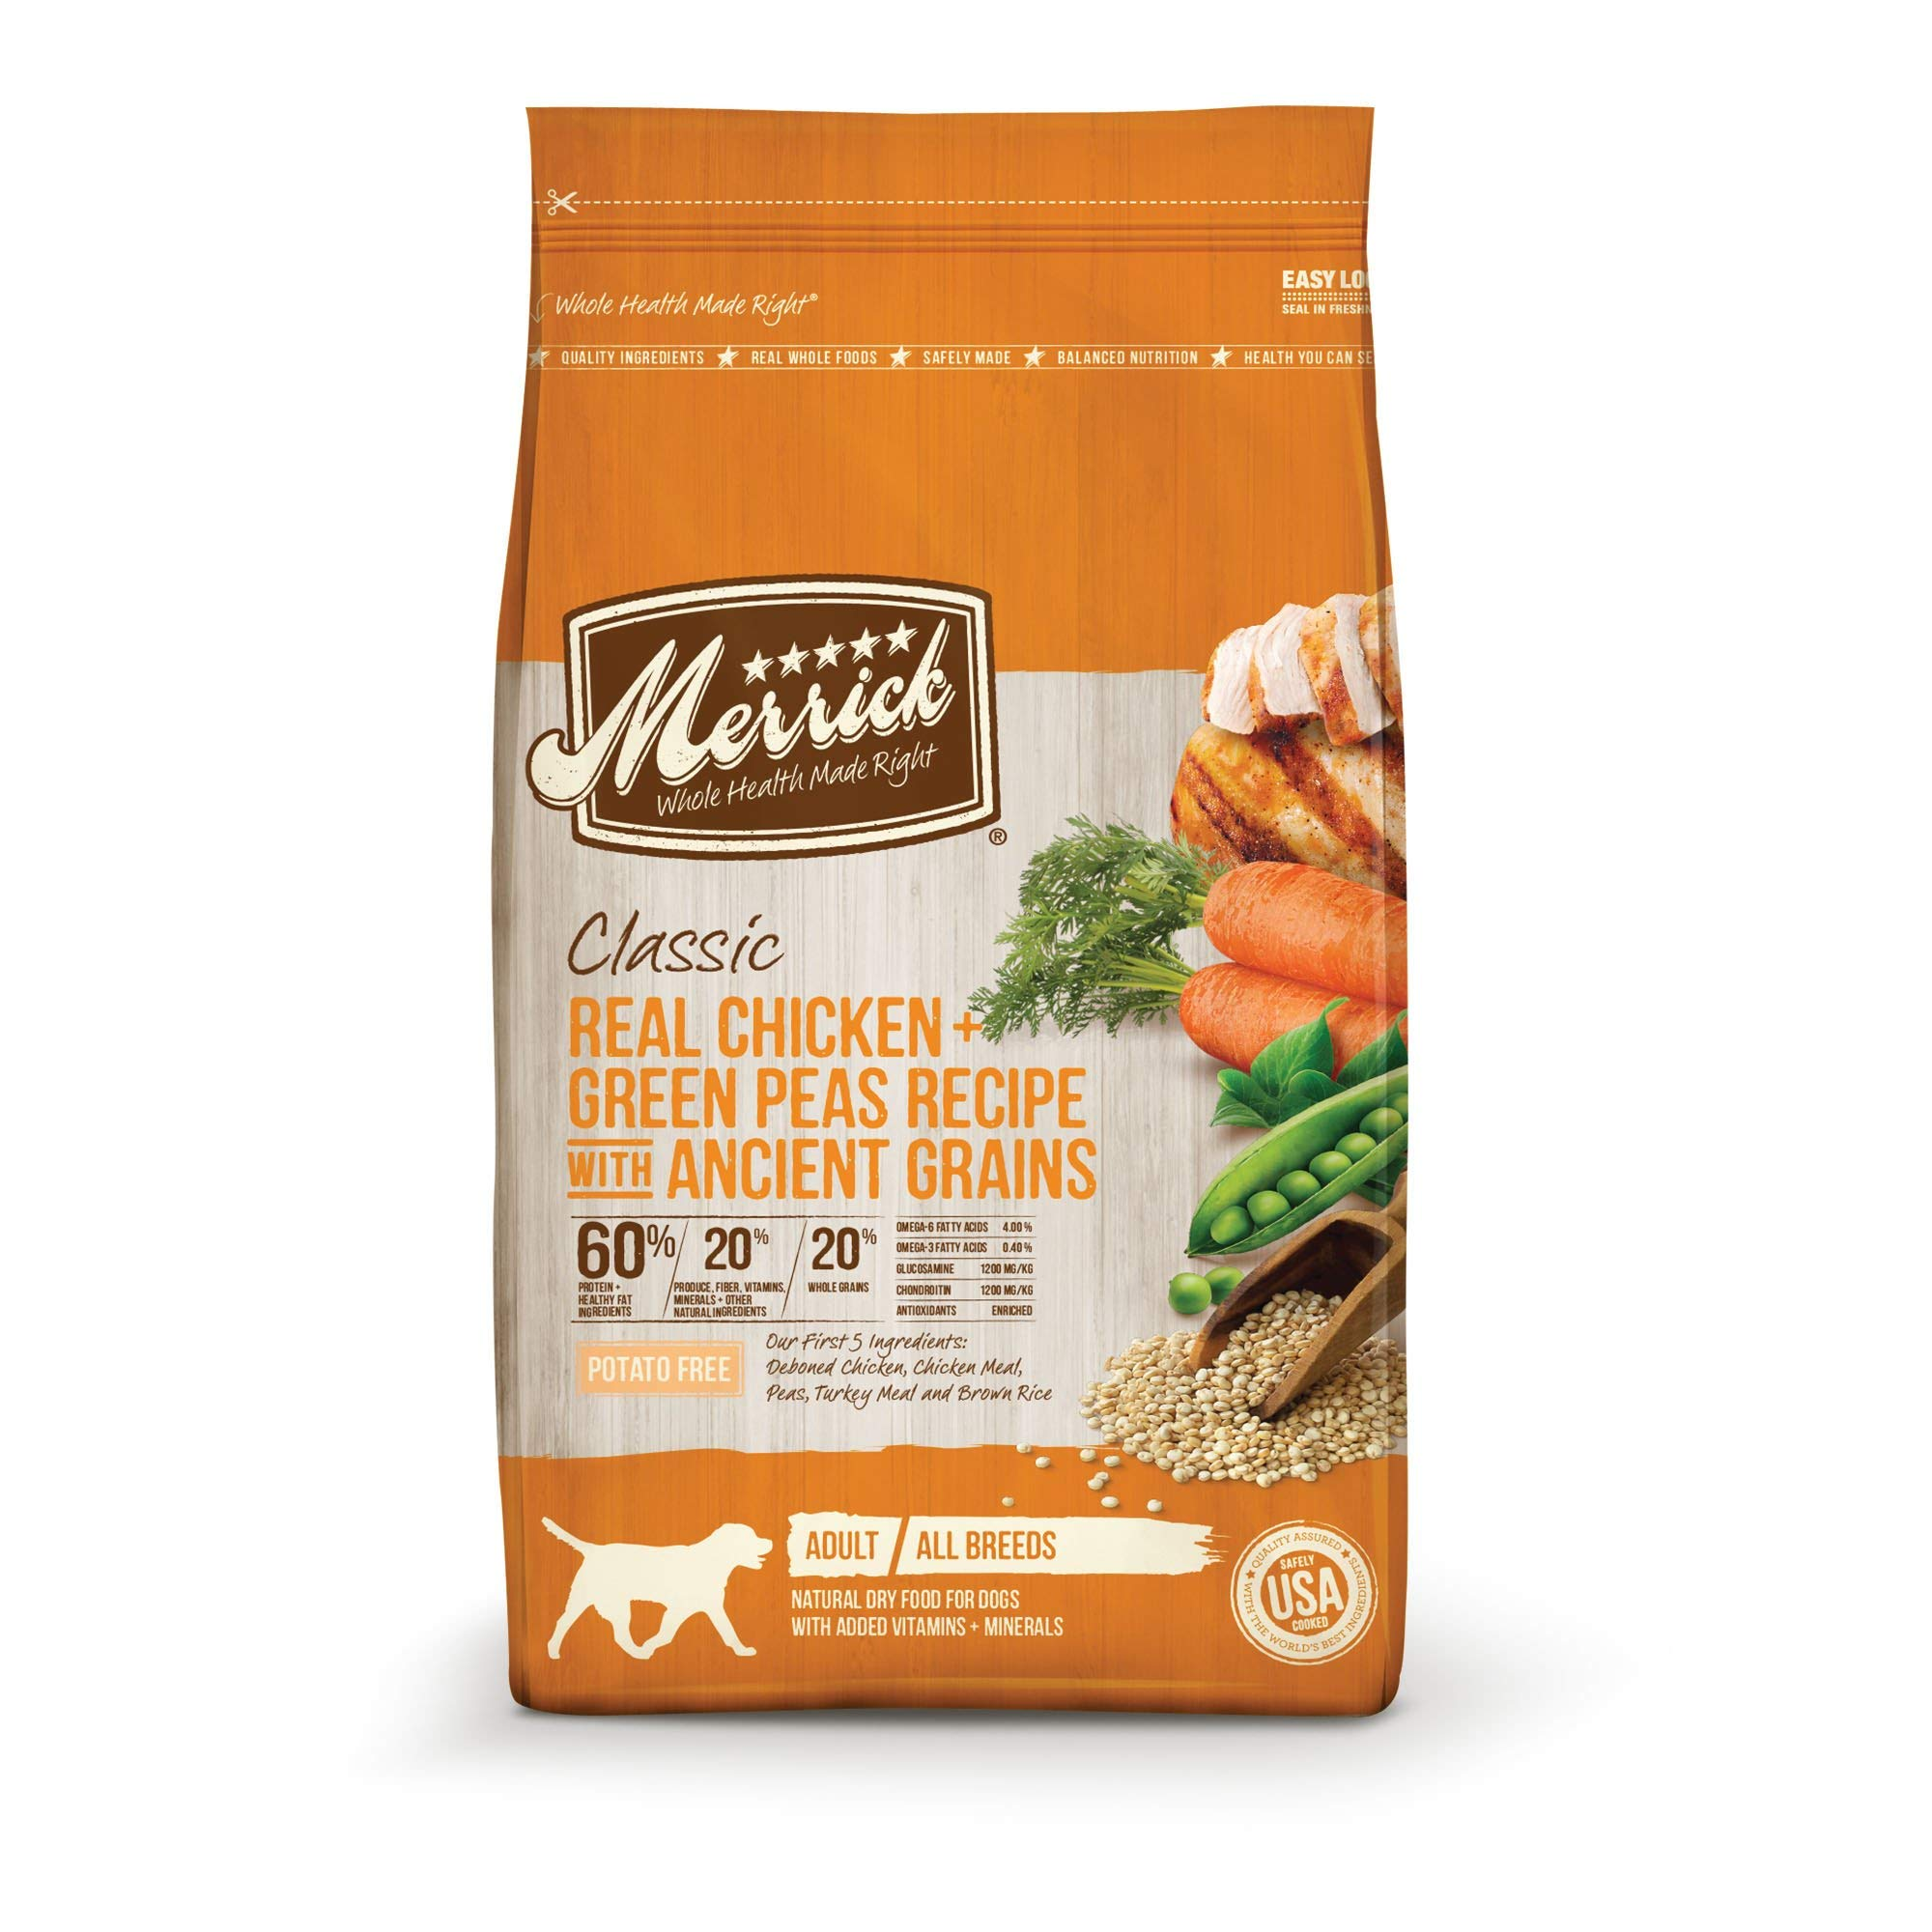 Merrick Dry Dog Food with added Vitamins & Minerals for All Breeds, 25-Pound, Chicken by Merrick